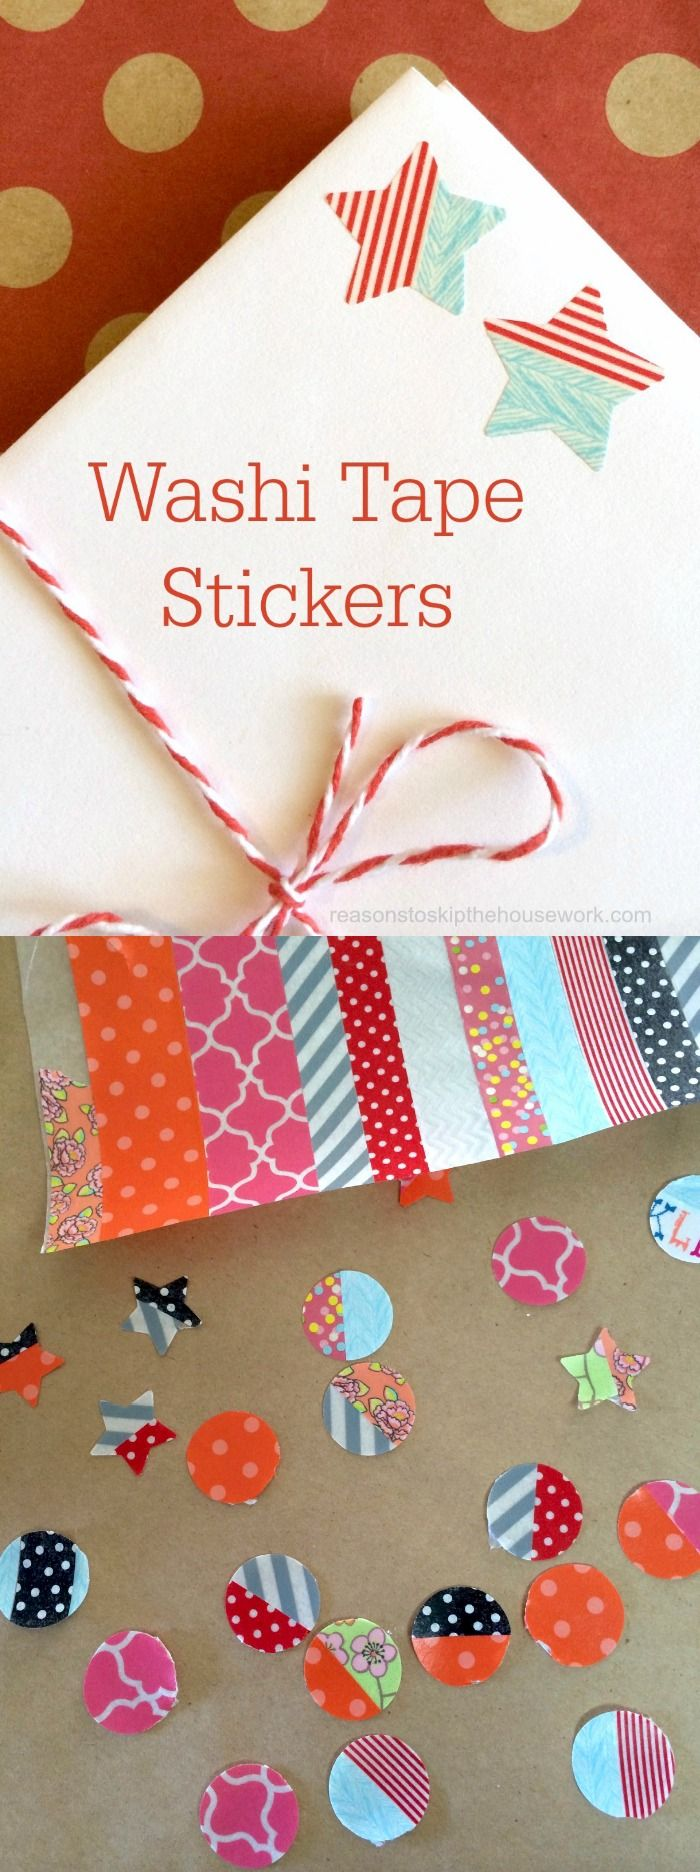 Kids and adults alike love this washi tape tutorial - it's so easy to learn how to make your own stickers! Just pick your favorite patterns of tape.